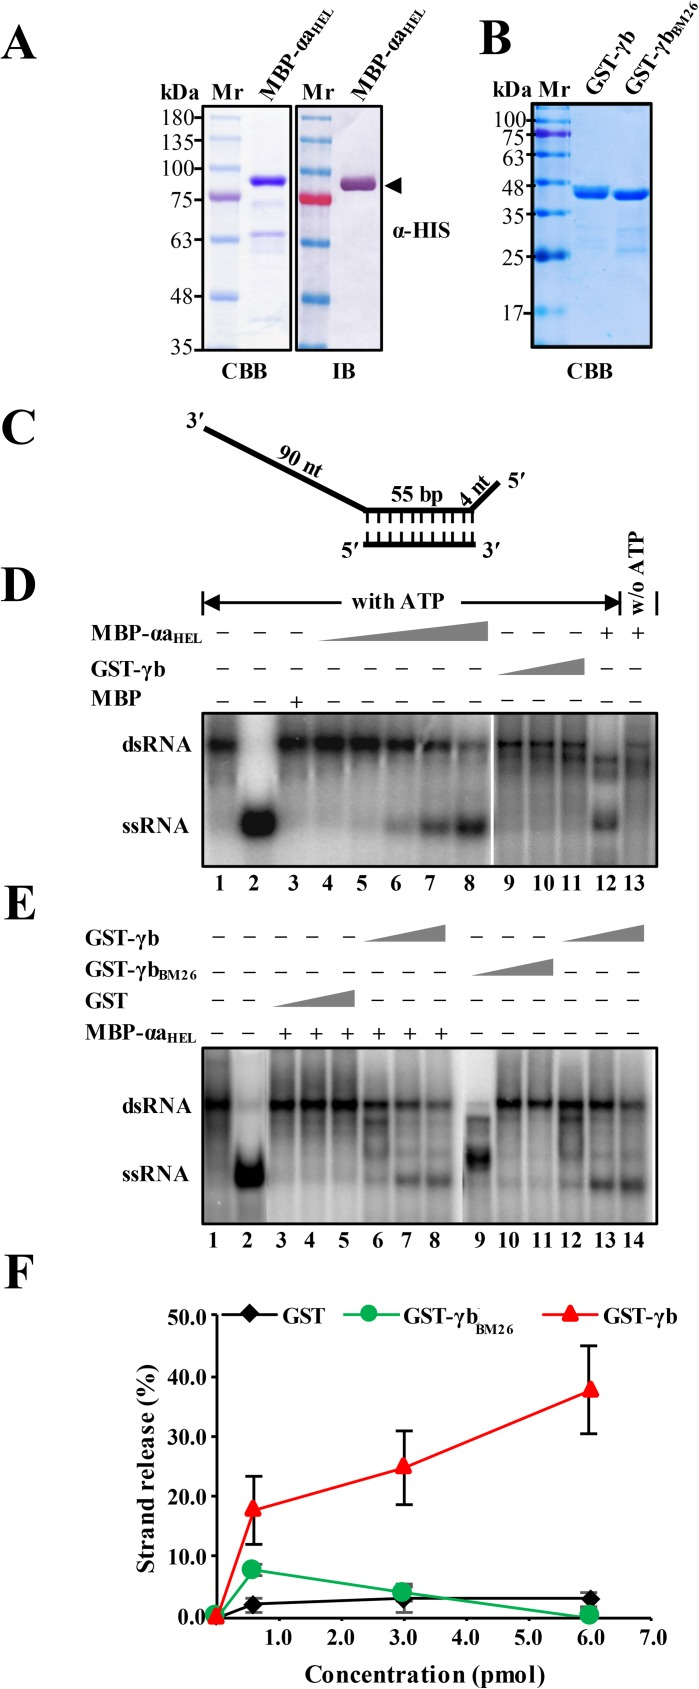 Enhancement of αa HEL protein RNA duplex unwinding by the γb protein. Panel A : SDS-PAGE and immunoblot analysis of purified MBP-αa HEL protein. The recombinant MBP-αa HEL protein containing a histidine tag and the αa helicase domain fused to the C-terminus of the maltose binding protein was expressed in E . coli strain BL21 and purified over Ni−NTA <t>agarose</t> columns. SDS-PAGE staining with Coomassie brilliant blue (CBB) is shown on the left side and immunoblot analysis (IB) with α-HIS antibodies is shown on the right side. Panel B: SDS-PAGE analysis of GST-tagged γb derivatives purified from E . coli . Sizes (in kDa) of molecular weight markers (Mr) are shown on the left sides of the blots. Panel C : Schematic depiction of the dsRNA substrate used for RNA unwinding assays. Preparation of the radioactive labeled substrate is described in the Materials and Methods and in S2 Table . The long and short thick lines indicate the template RNA strands, and vertical dashed lines represent regions of base pairing. The lengths of the double-stranded and overhanging portions of the RNA strands are given in base pairs (bp) and nucleotides (nt), respectively. Panel D. RNA helicase activities of the purified MBP-αa HEL and GST-γb proteins in the presence or absence of ATP. The mobility of the radioactive labeled RNAs was tested using native acrylamide gel electrophoresis followed by phosphor imaging. Lane 1, migration of the partial dsRNA band. Lane 2, migration of single-stranded RNA produced by heating the dsRNA substrate at 95°C for 5 min. Lane 3, Negative control showing lack of helicase activity of purified MBP. Lanes 4–8, RNA unwinding reactions containing increasing amounts of purified MBP-αa HEL (1.8–6.2 pmol) in the presence of 5 mM ATP. Lanes 9–11, RNA unwinding reactions containing increasing amounts of purified GST-γb (1.8–6.2 pmol) in the presence of 5 mM ATP. Lanes 12–13 indicate the RNA helicase activity of MBP-αa HEL with ATP or without (w/o) addition of ATP to the reaction mixture. Note: Lanes 1–8 and 9–13 were separated on separate gels. Panel E. dsRNA unwinding of MBP-αa HEL in RNA helicase reactions containing wt GST-γb, GST-γb BM26 or GST. Helicase assays were carried out with 4.4 pmol of the MBP-αa HEL protein in the presence of increasing concentrations (0.5, 3.0, 6.0 pM) of GST (lanes 3–5), γb (lanes 6–8, 12–14) or γb BM26 (lanes 9–11) respectively. Positions of the partial dsRNA substrate and the released 55 nt 32 P ssRNA strand product are indicated on the left (lanes 1–2). Note: Lanes 1–8 and 9–14 were separated on separate gels. Panel F: Quantification of dsRNA unwinding efficiency shown in Fig 7E. The results are plotted as percentages of ssRNA release compared to the ssRNA in lane 2.